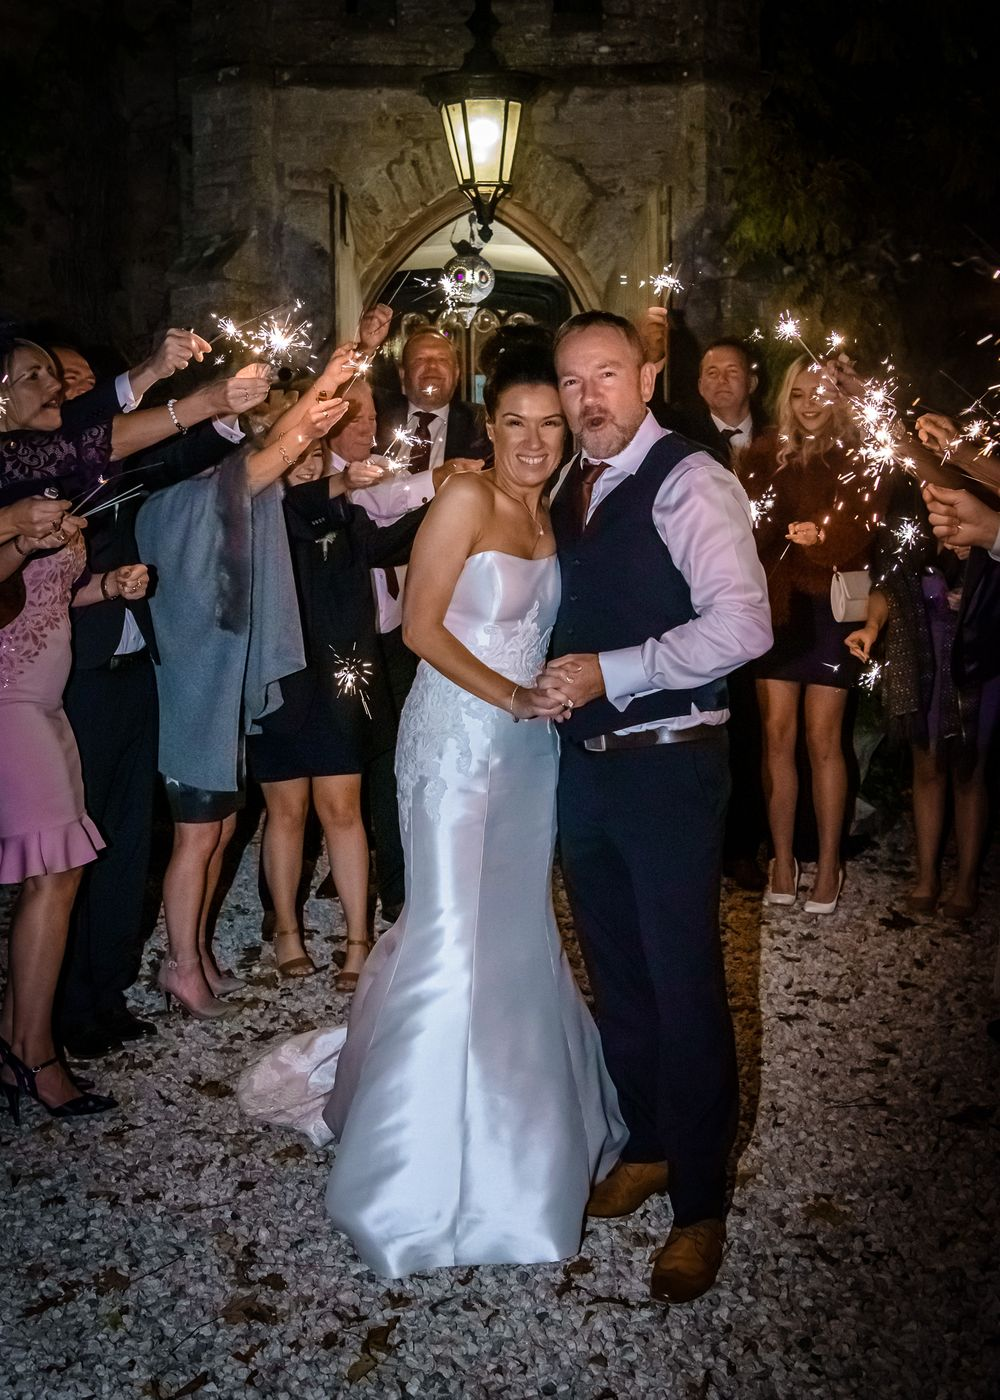 Bride and groom surrounded by quests with sparklers